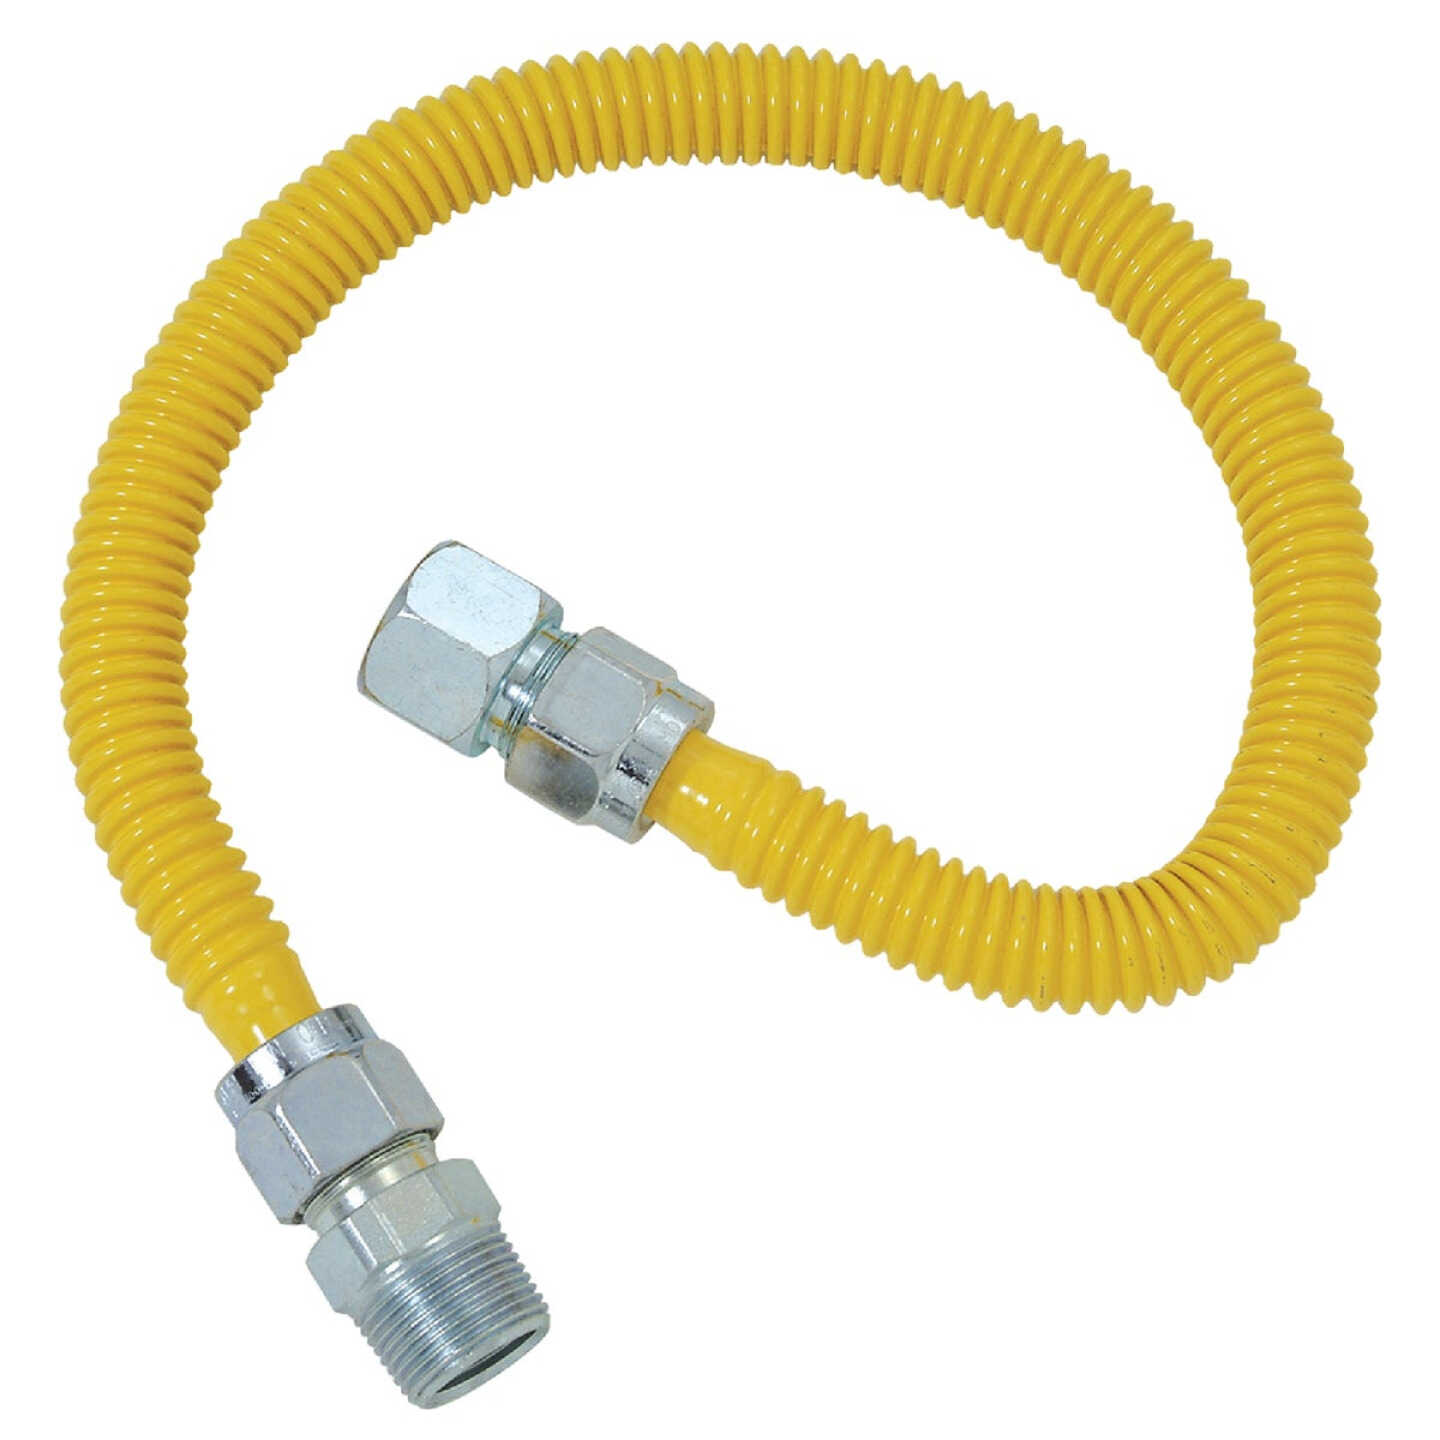 Dormont 5/8 In. OD x 60 In. Coated Stainless Steel Gas Connector, 3/4 In. FIP x 3/4 In. MIP (Tapped 1/2 In. FIP) Image 1